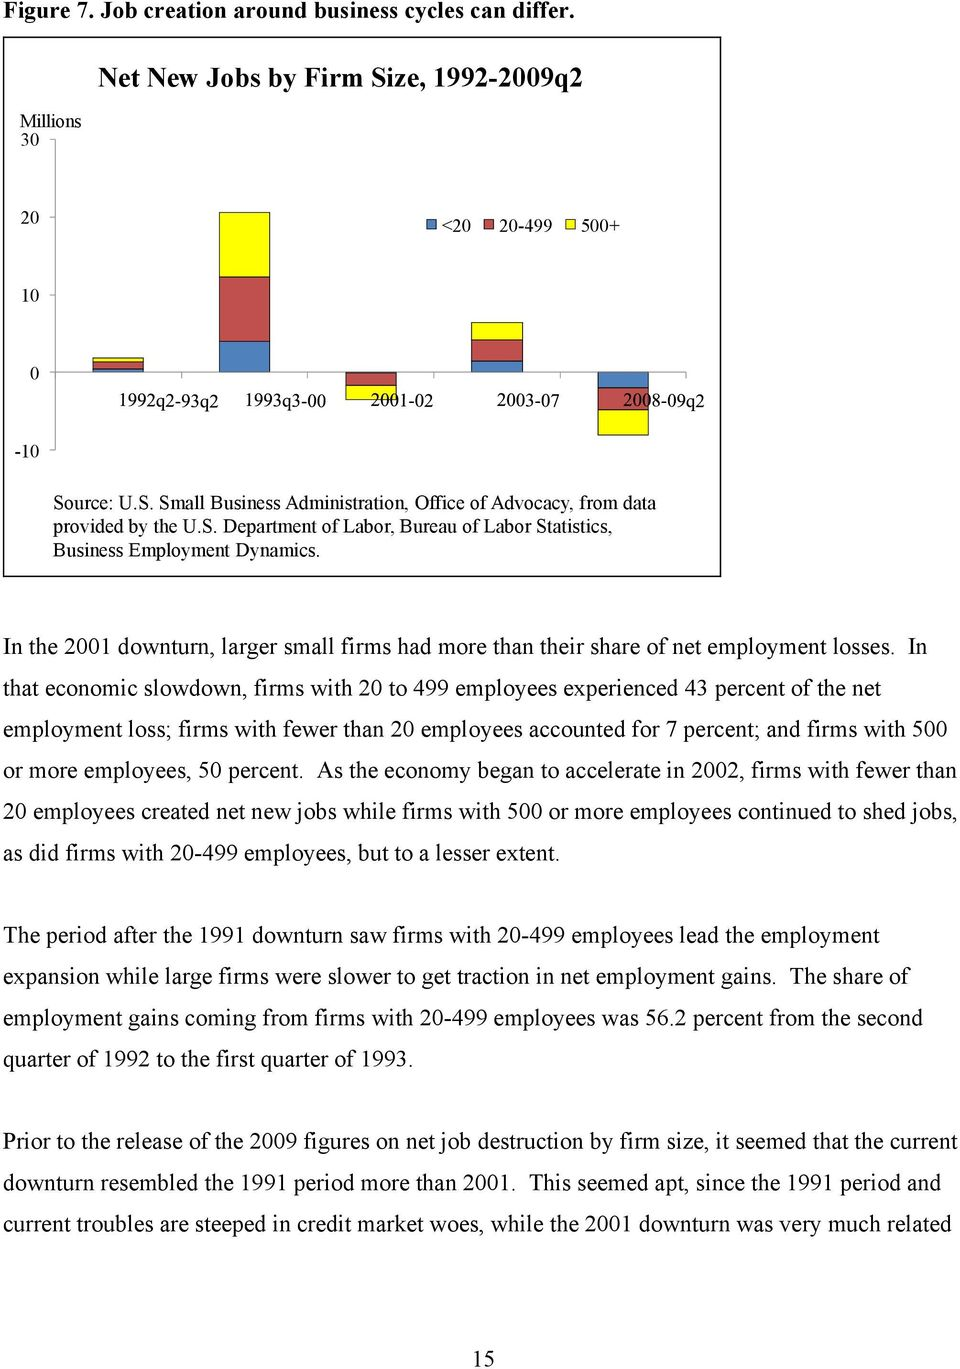 In that economic slowdown, firms with 20 to 499 employees experienced 43 percent of the net employment loss; firms with fewer than 20 employees accounted for 7 percent; and firms with 500 or more